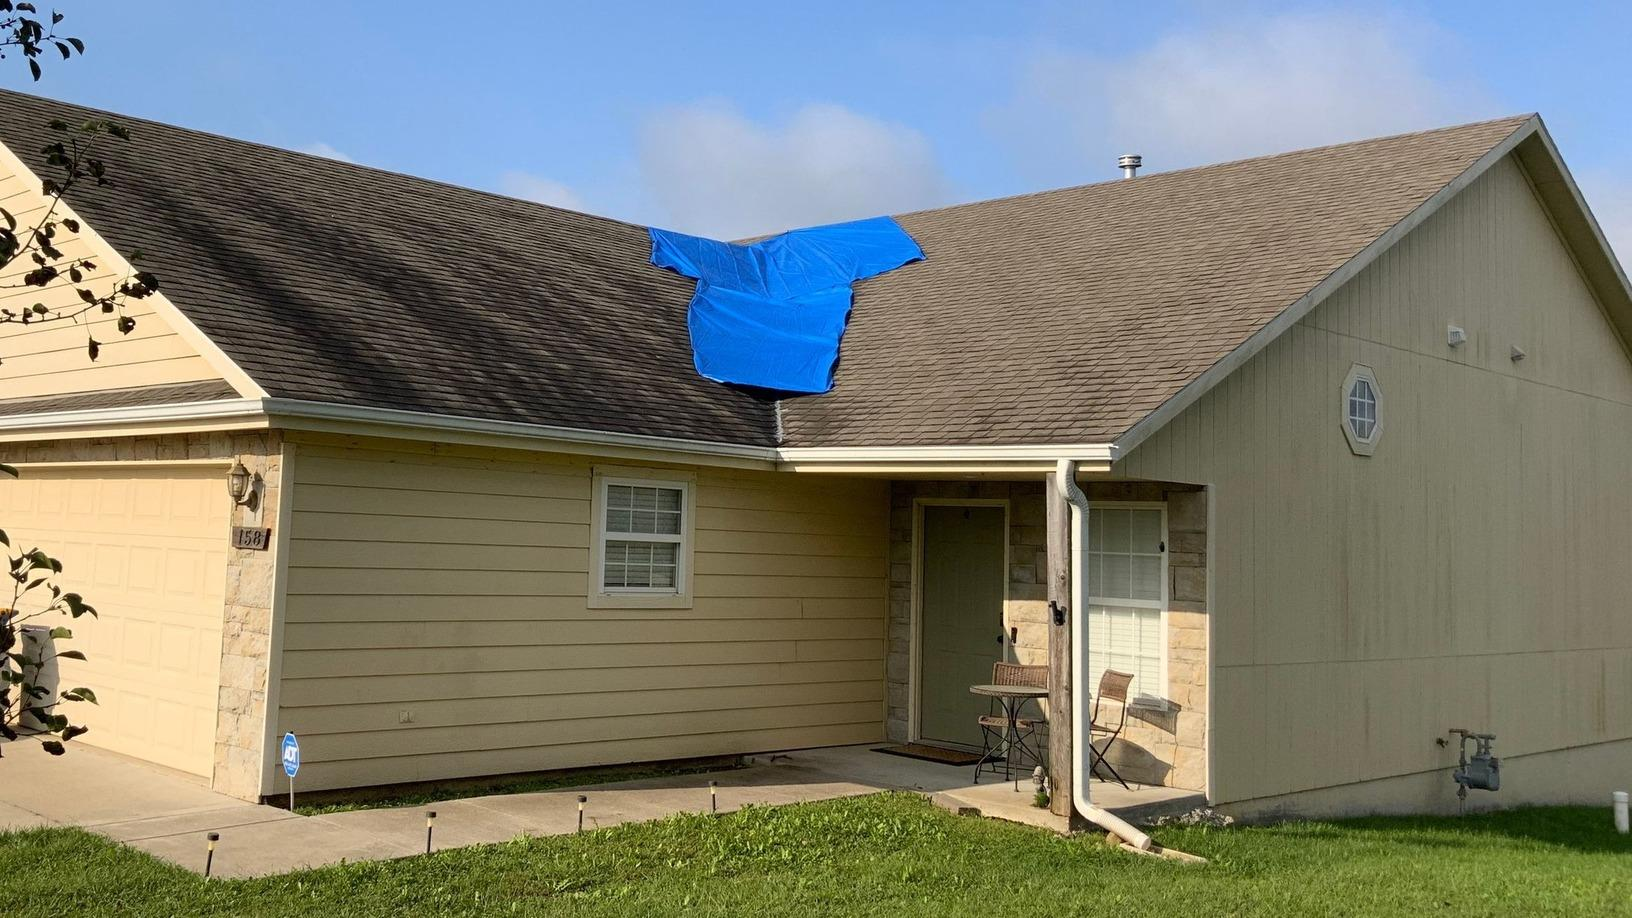 Leaking Roof in Tonganoxie, KS is Repaired by Arrow Renovation - Before Photo